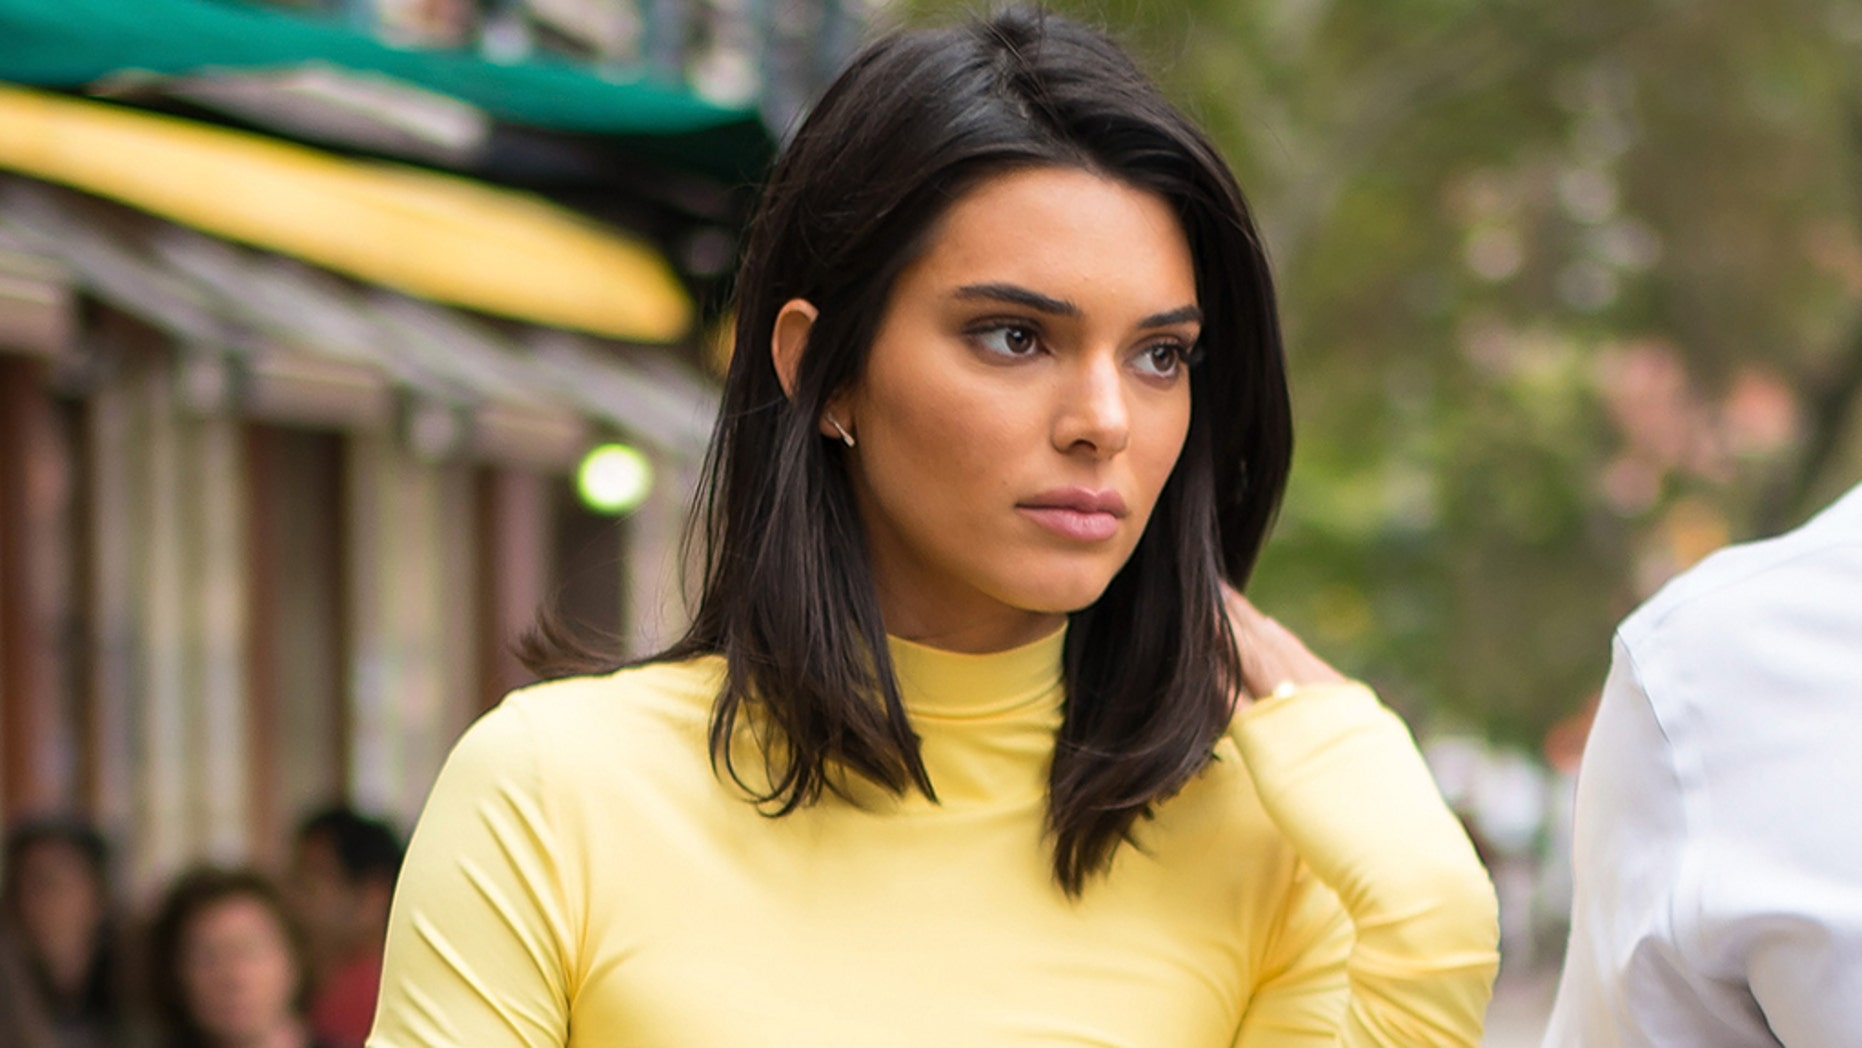 Kendall Jenner's 'Brave' Announcement Earns Mixed Reactions On Twitter